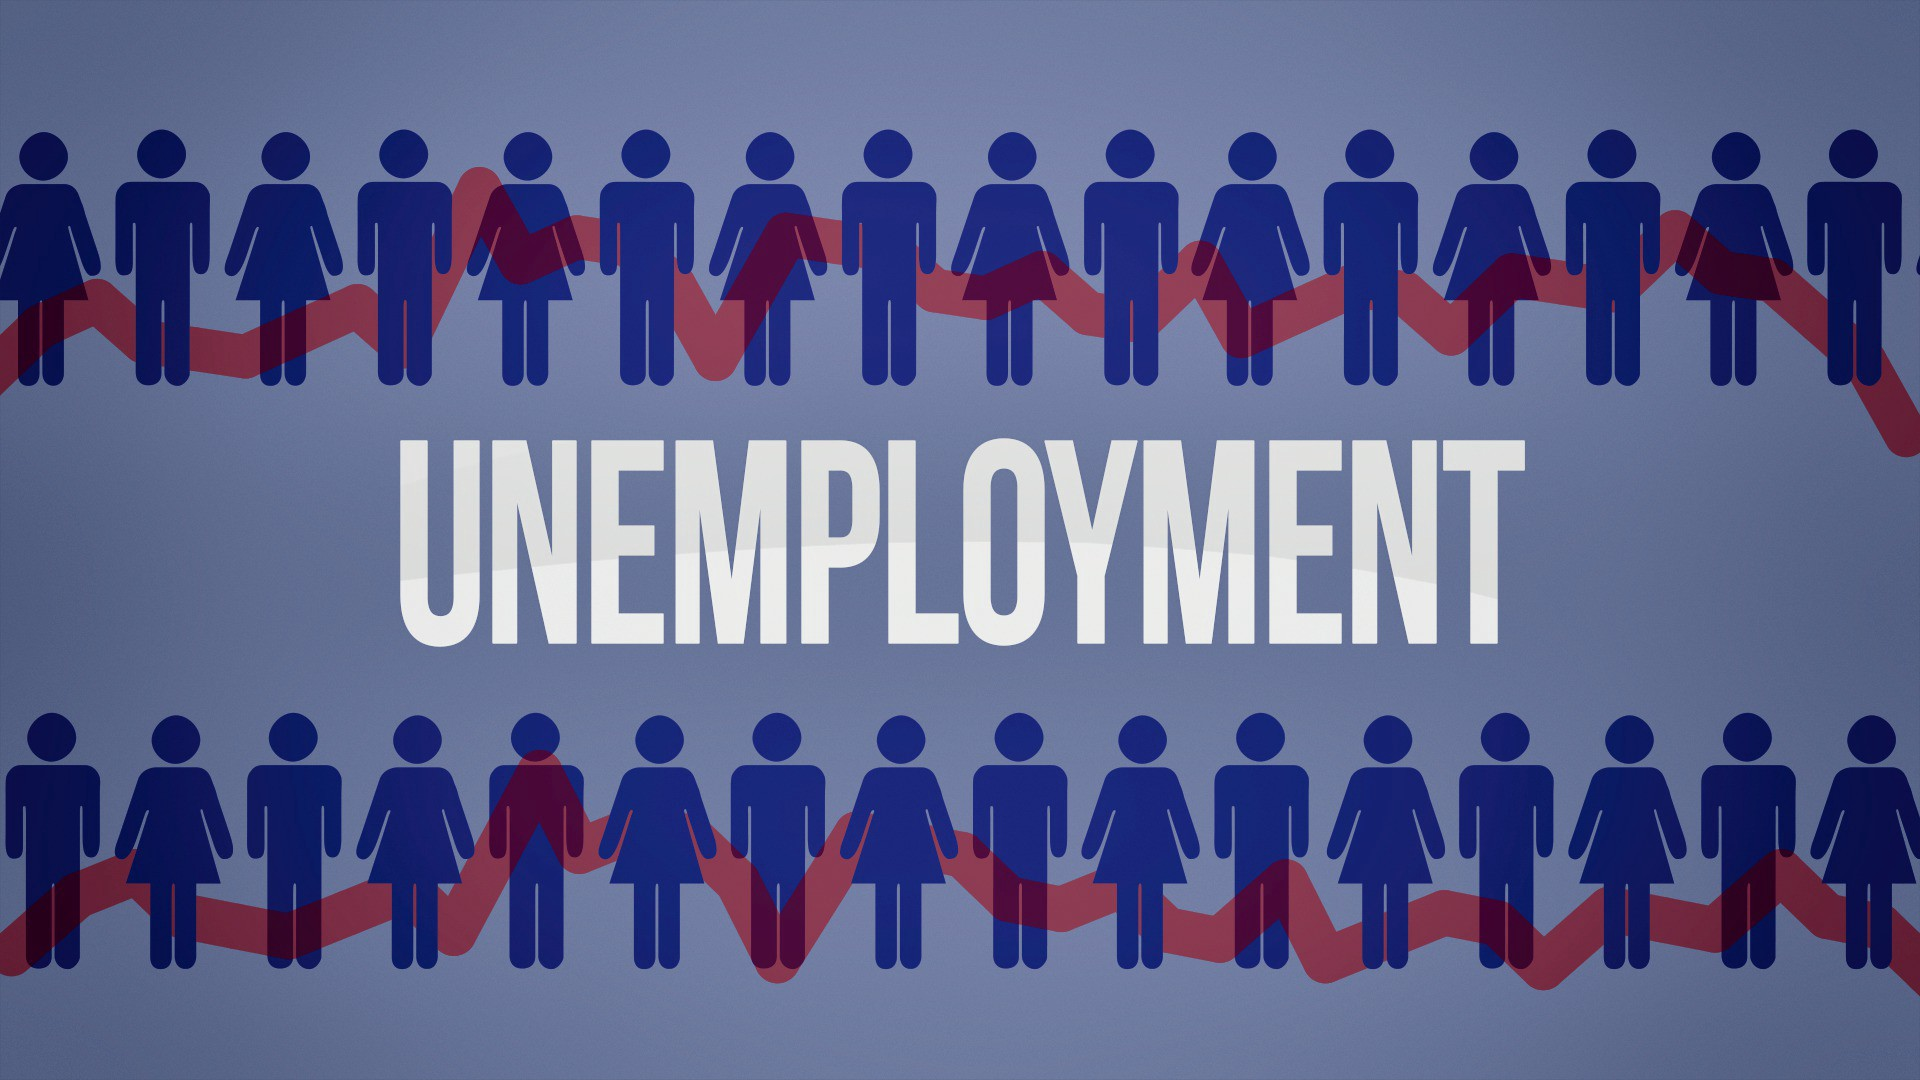 Unemployment in US During COVID-19